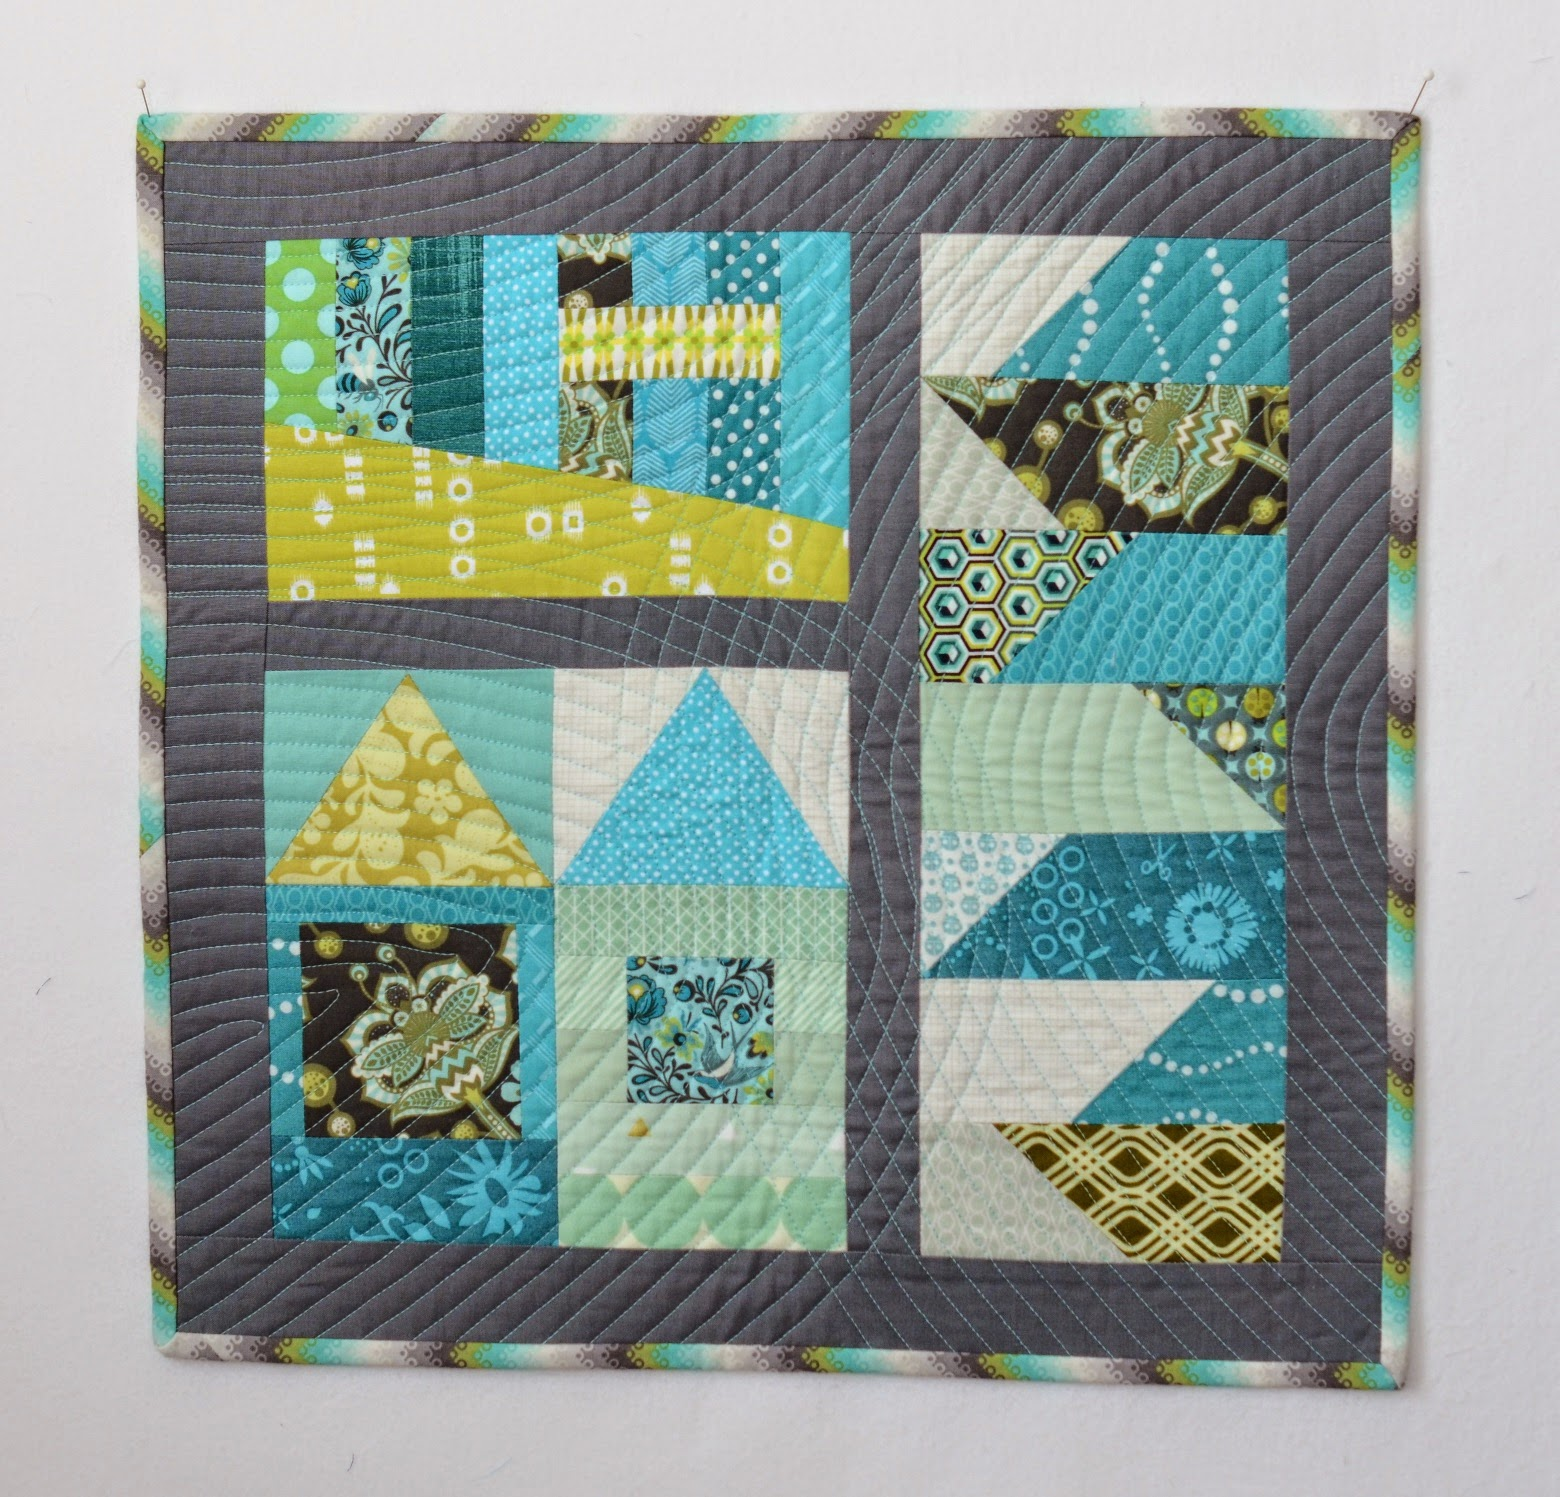 Goings on in the sewing room hyacinth quilt designs for Quilt room design ideas